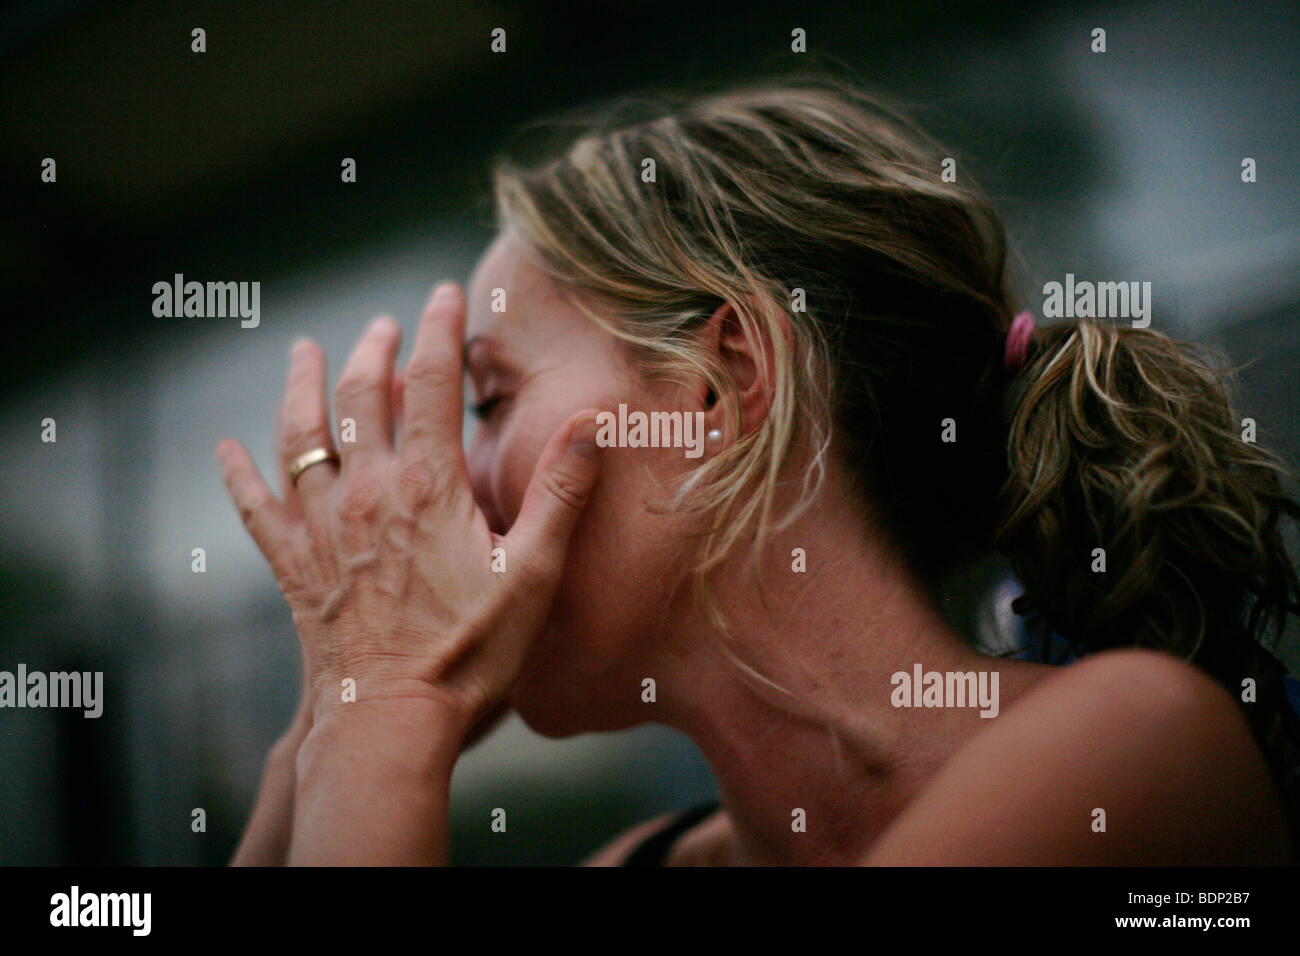 Side view of young woman covering her face Photo Stock